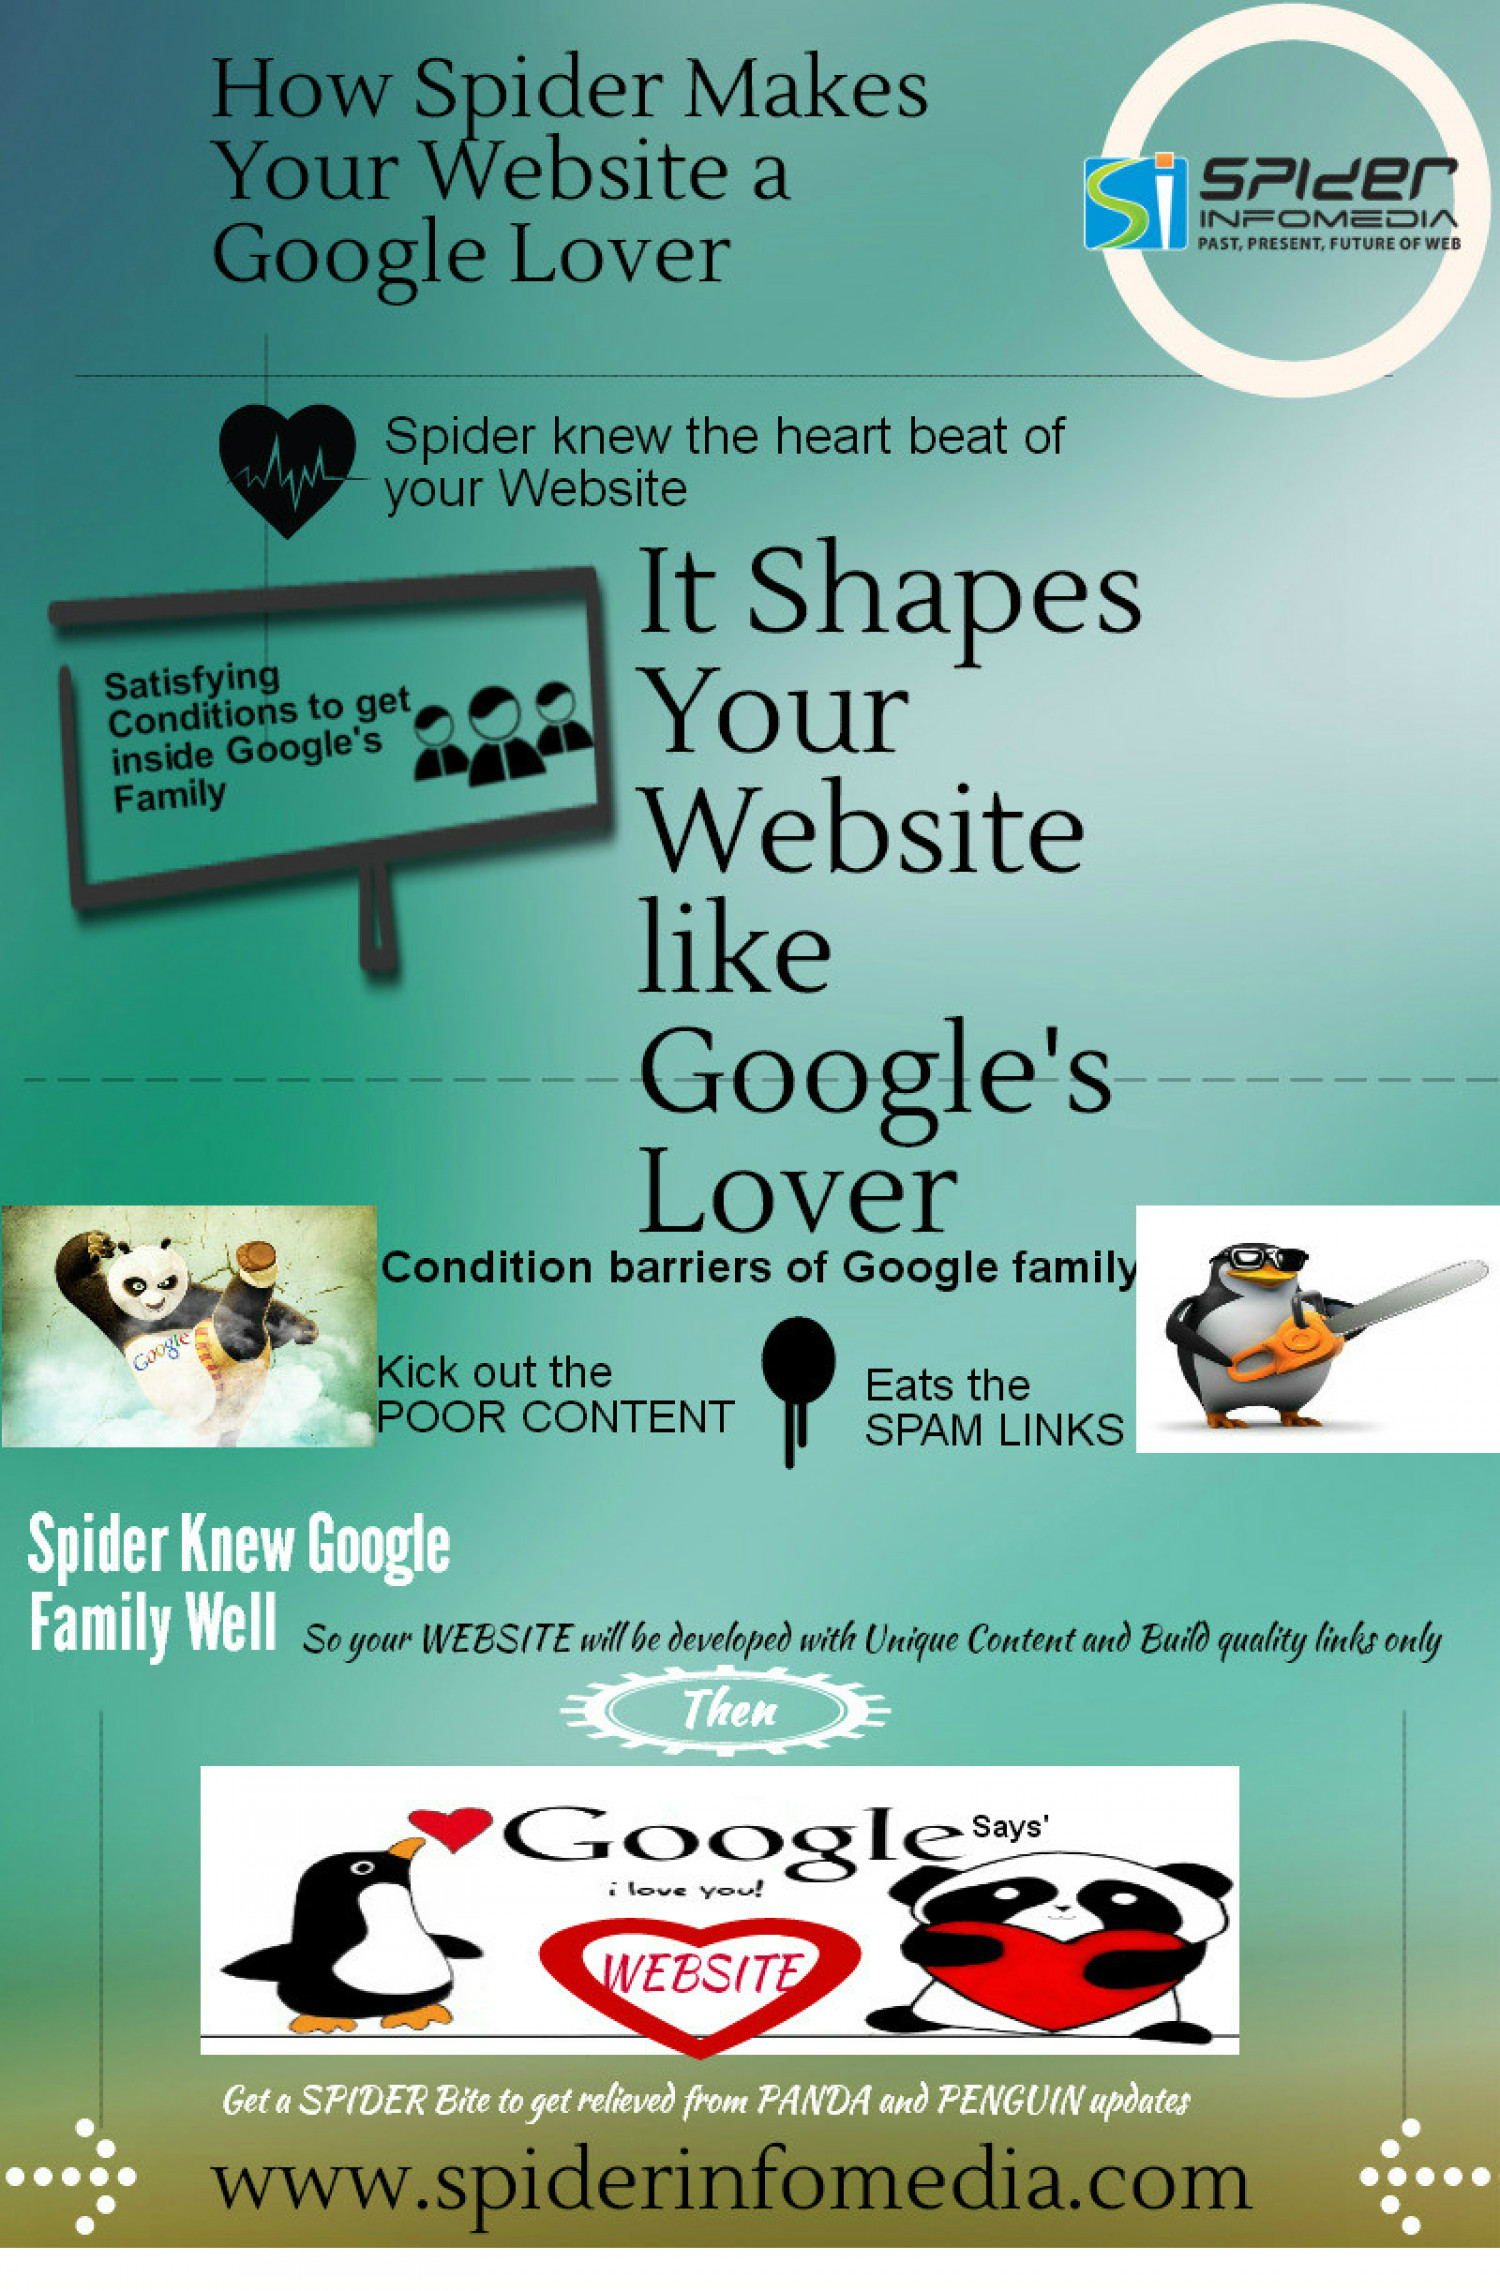 How Spider Makes Your Website a Google Lover Infographic